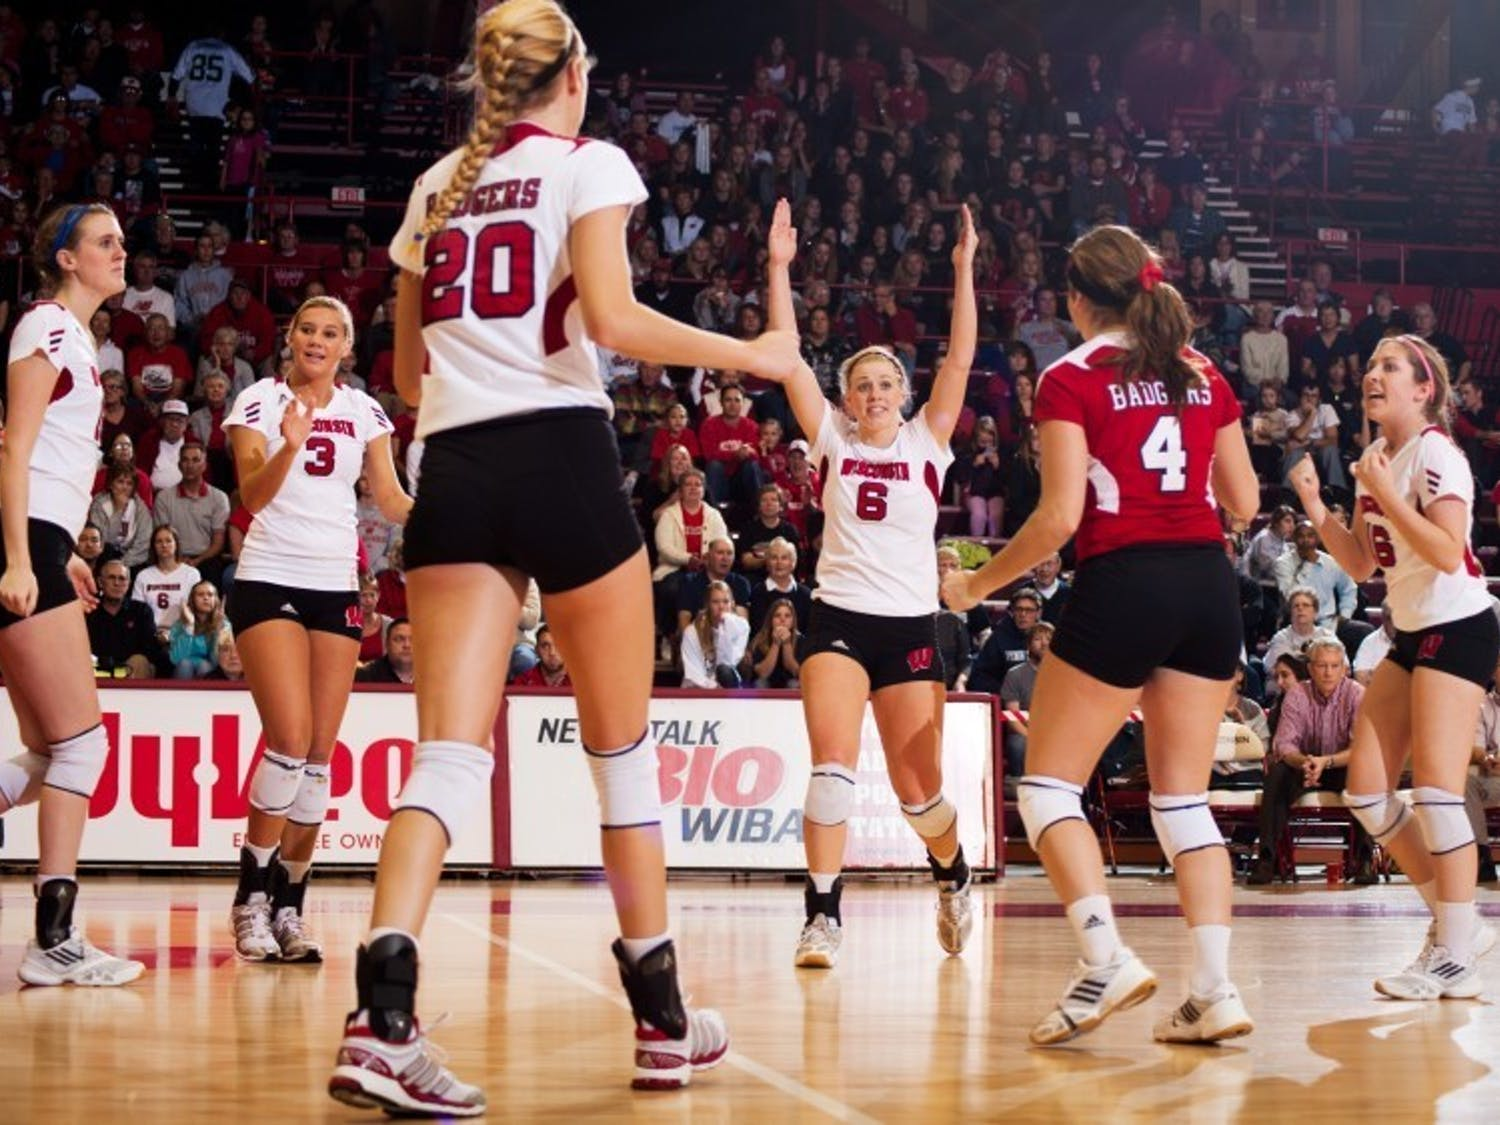 Over 4000 people attended Sunday's match between the University of Wisconsin and the four-time defending NCAA Champion Penn State Nittany Lions. The Badgers came out on top in five sets.